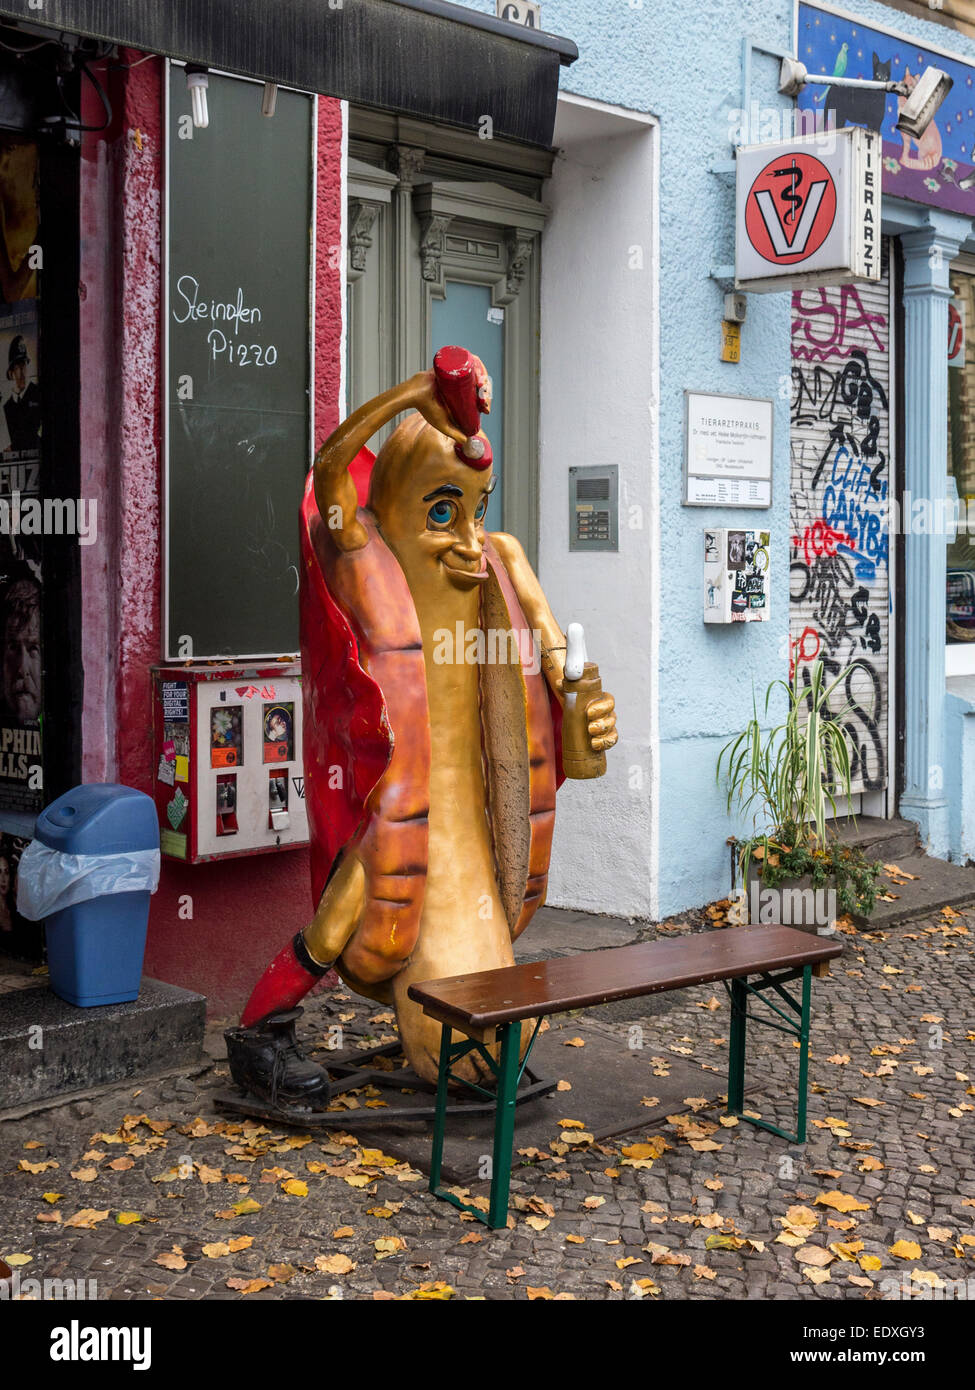 Nice Giant Hot Dog With Roll, Tomato Sauce And Mustard   Smiling Plaster Mascot  Outside Fast Food Shop, Mitte, Berlin, Germany